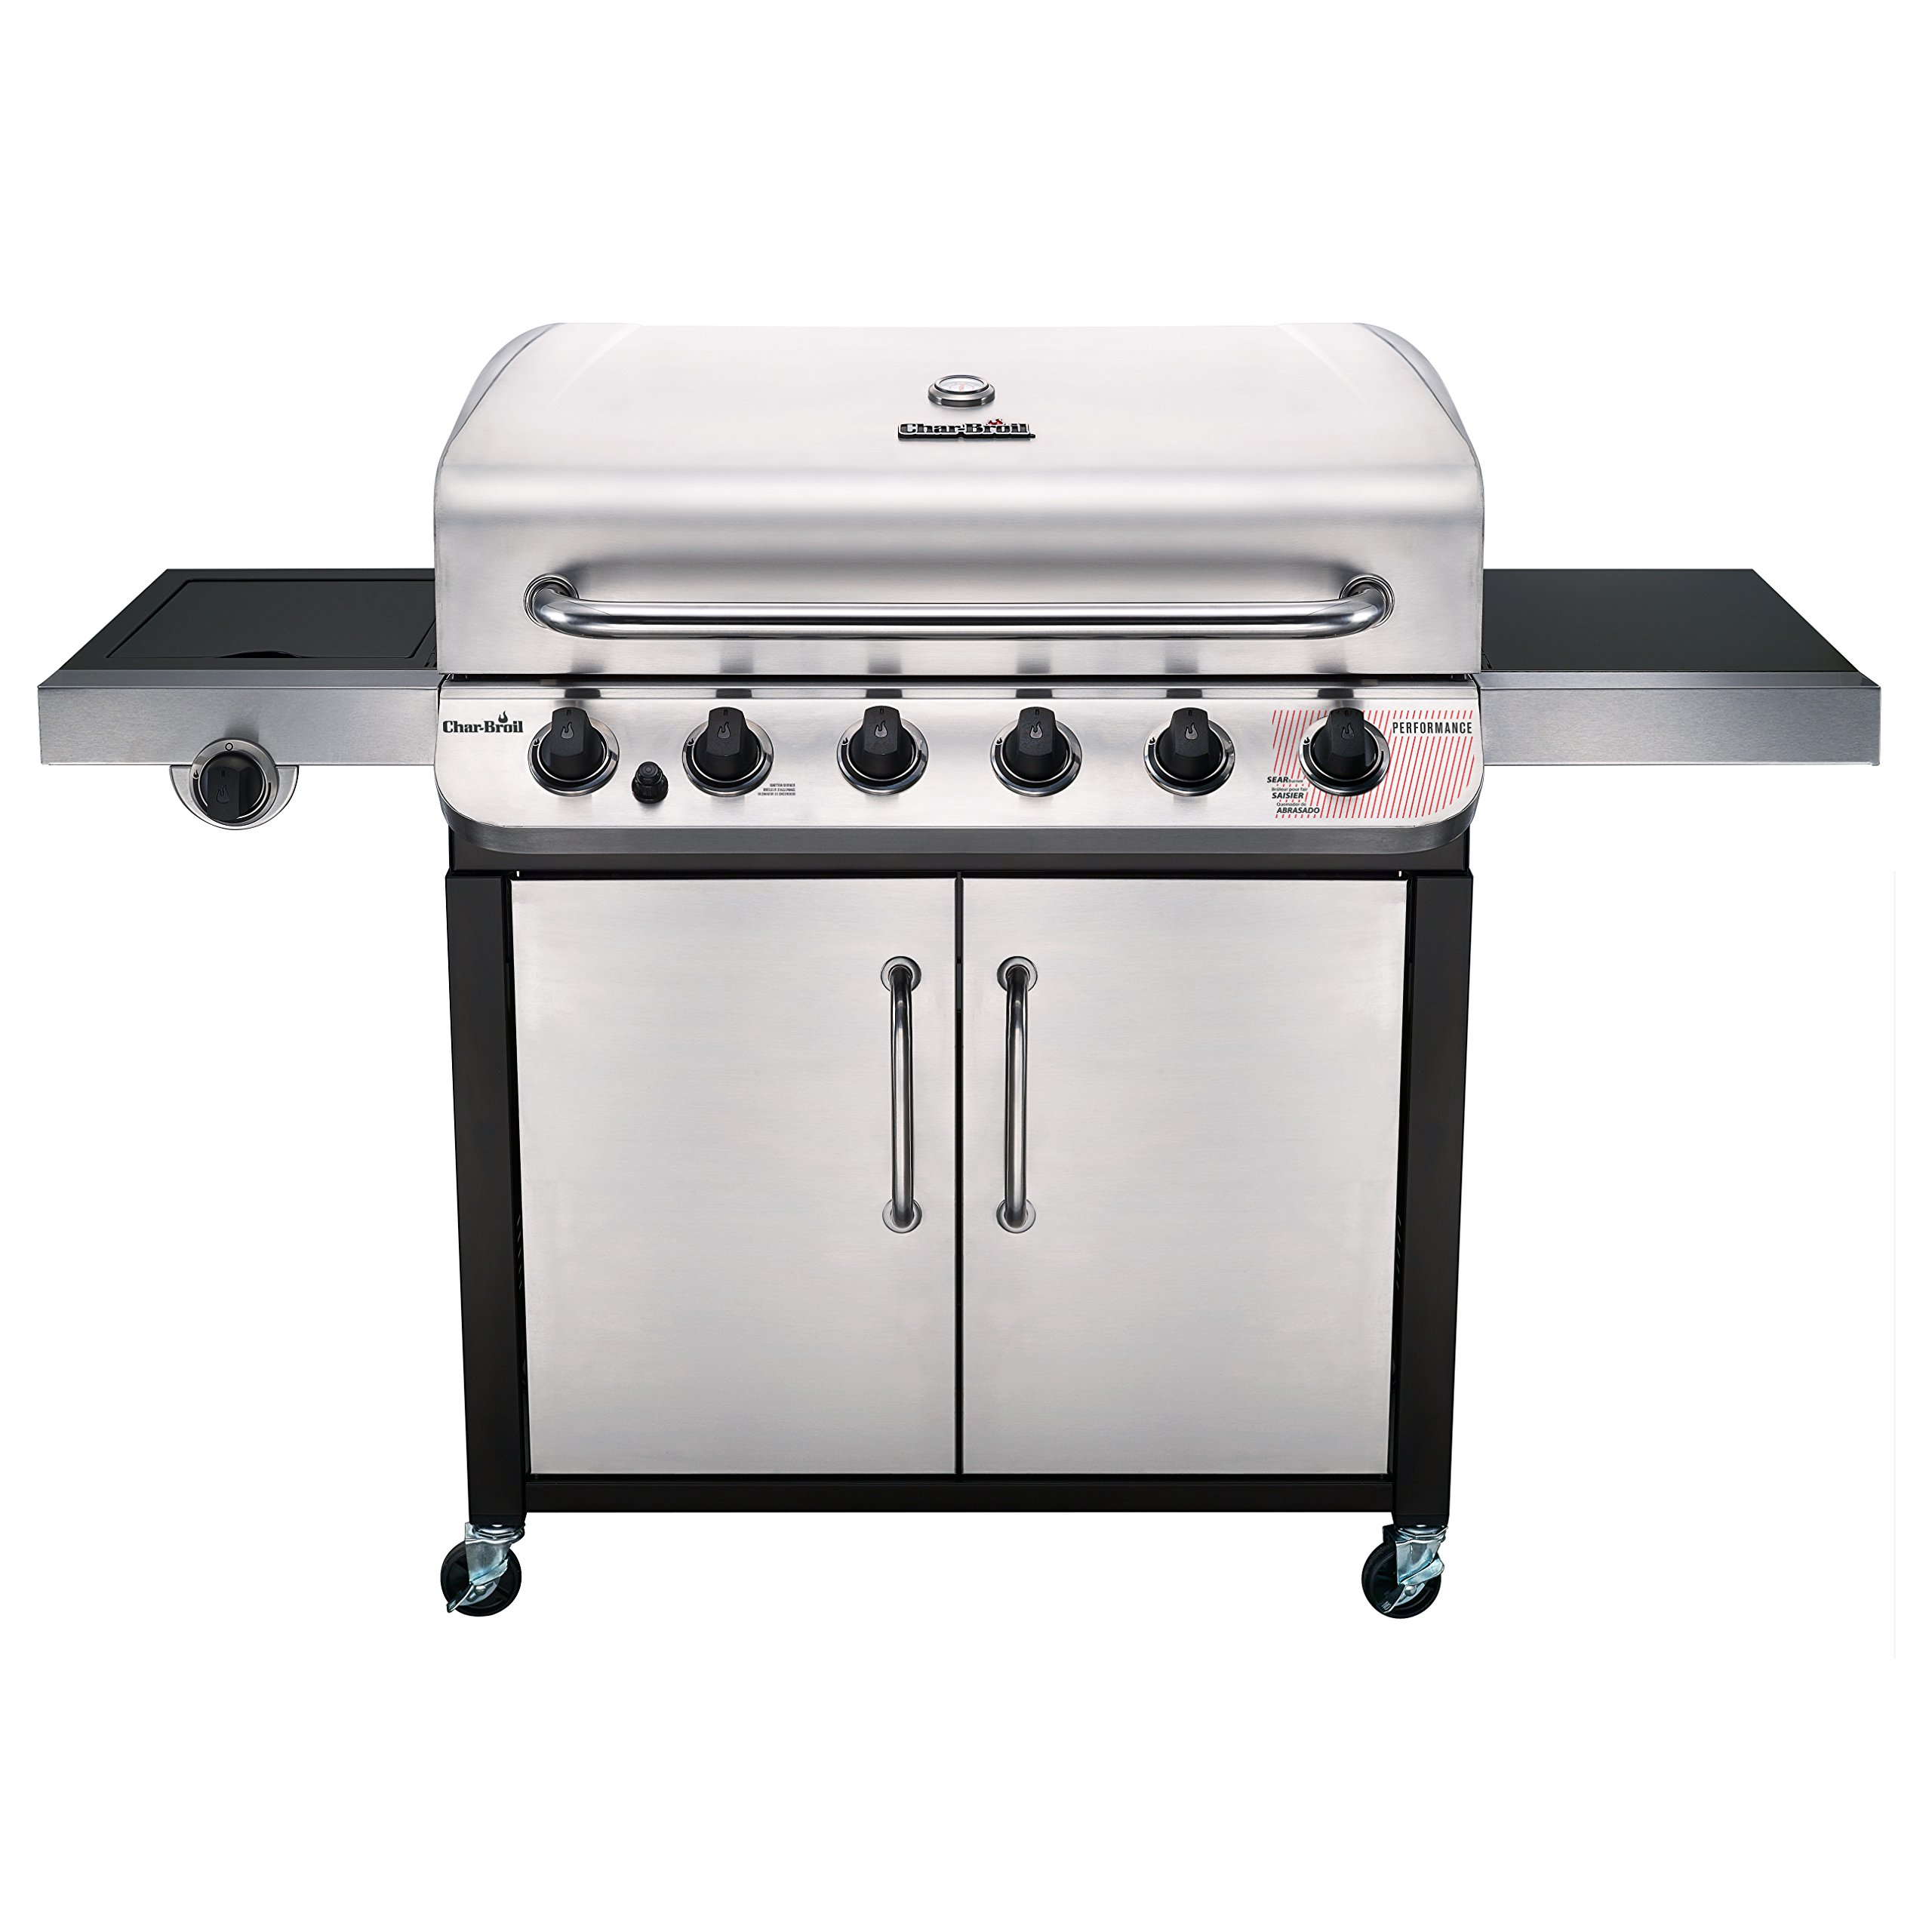 Char-Broil Performance 650 6-Burner Cabinet Gas Grill by Char-Broil (Image #3)